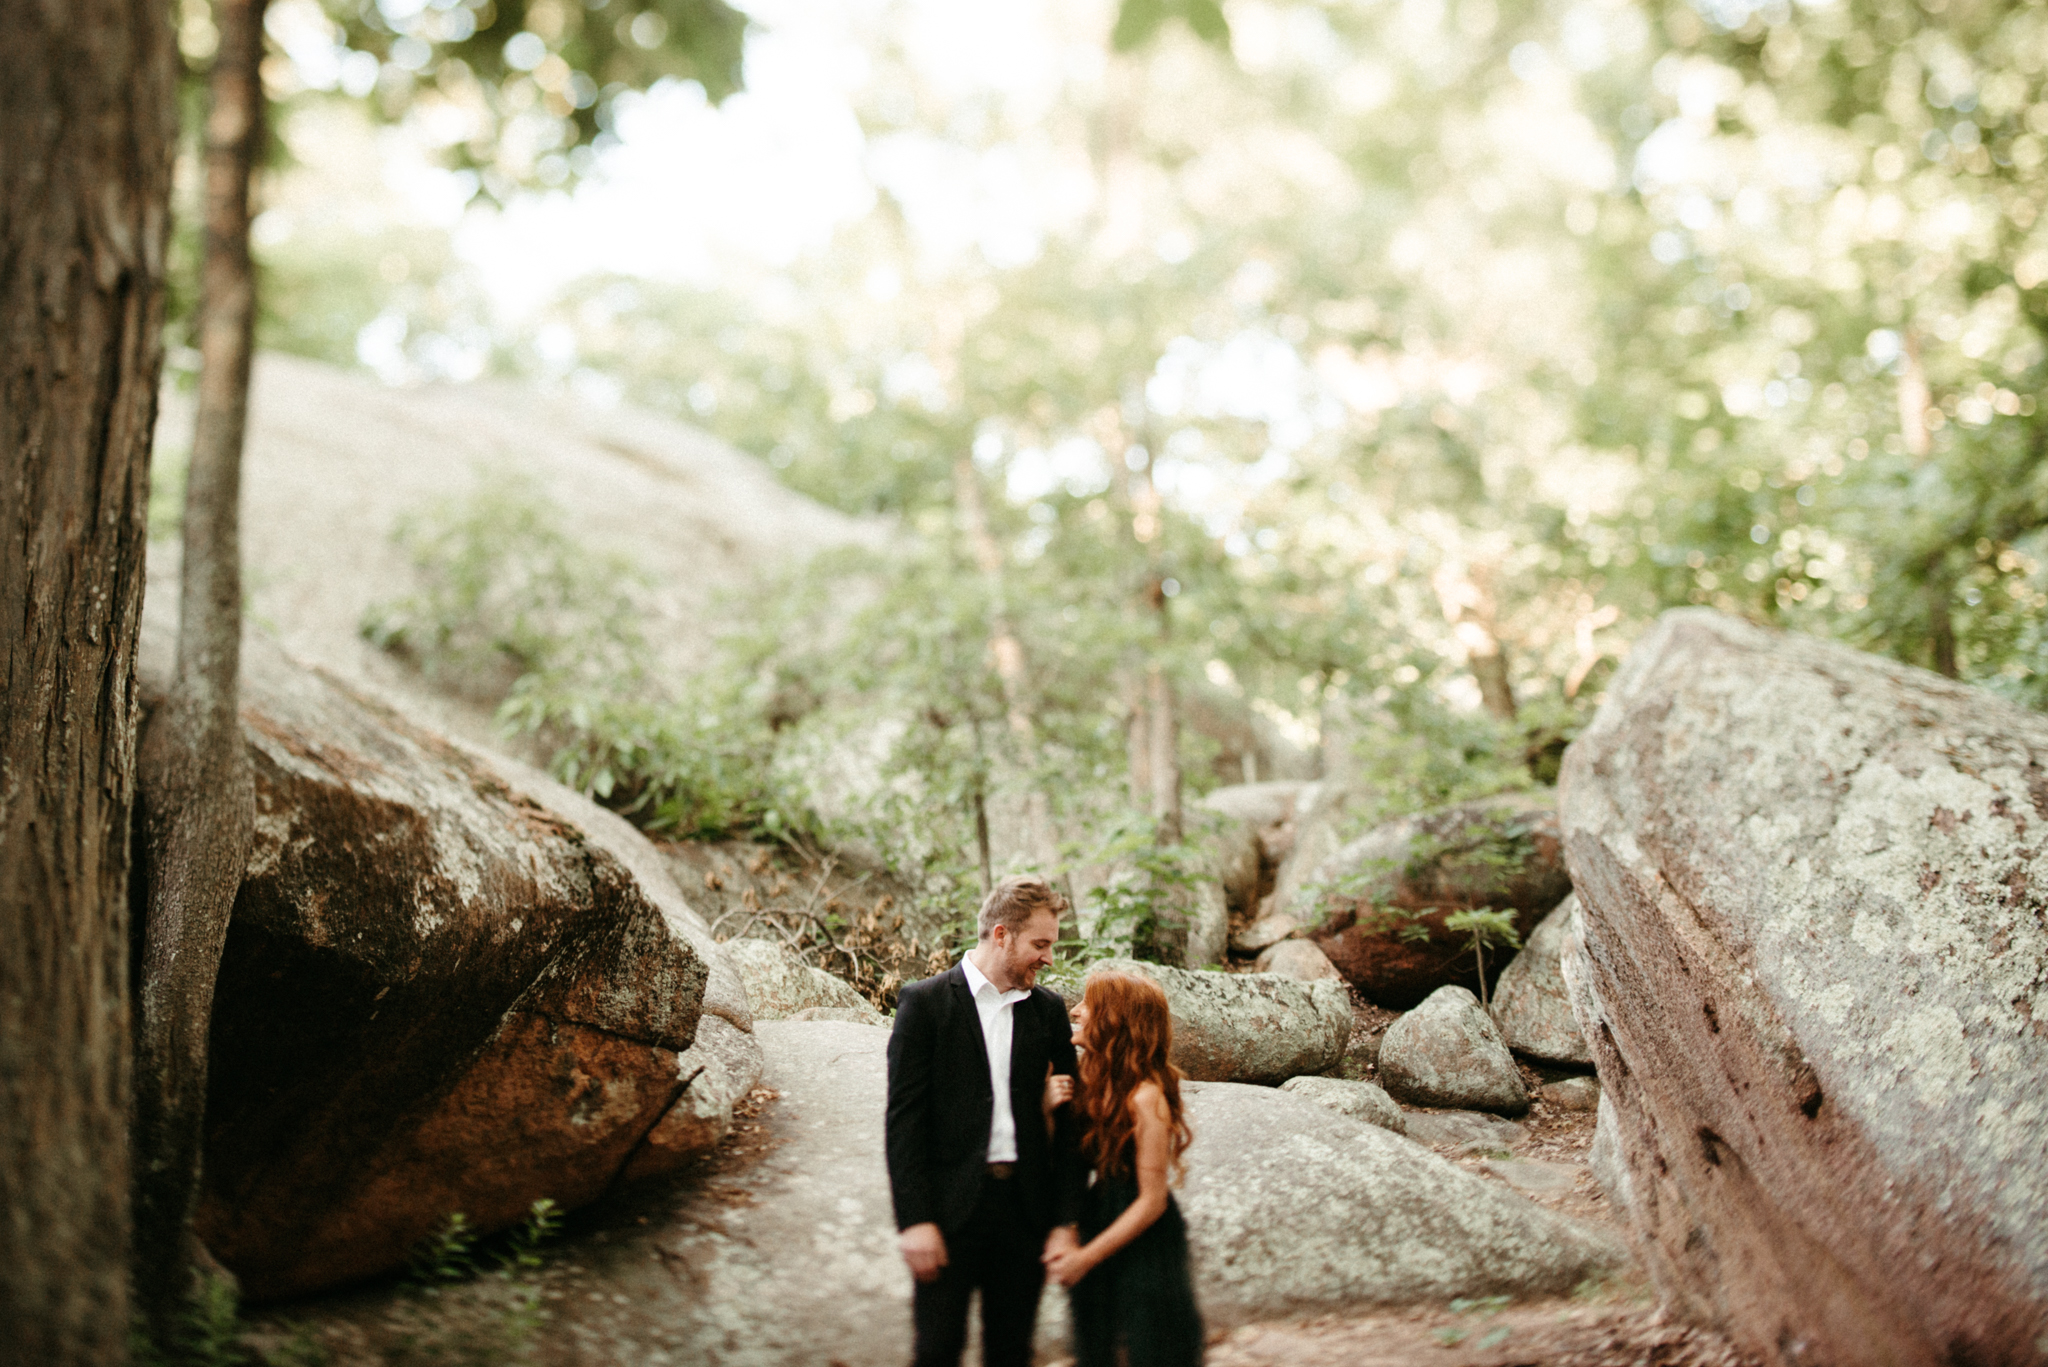 Zach and Rosalie - Missouri Wedding Photographer - Elephant rocks state park anniversary session -6963.jpg